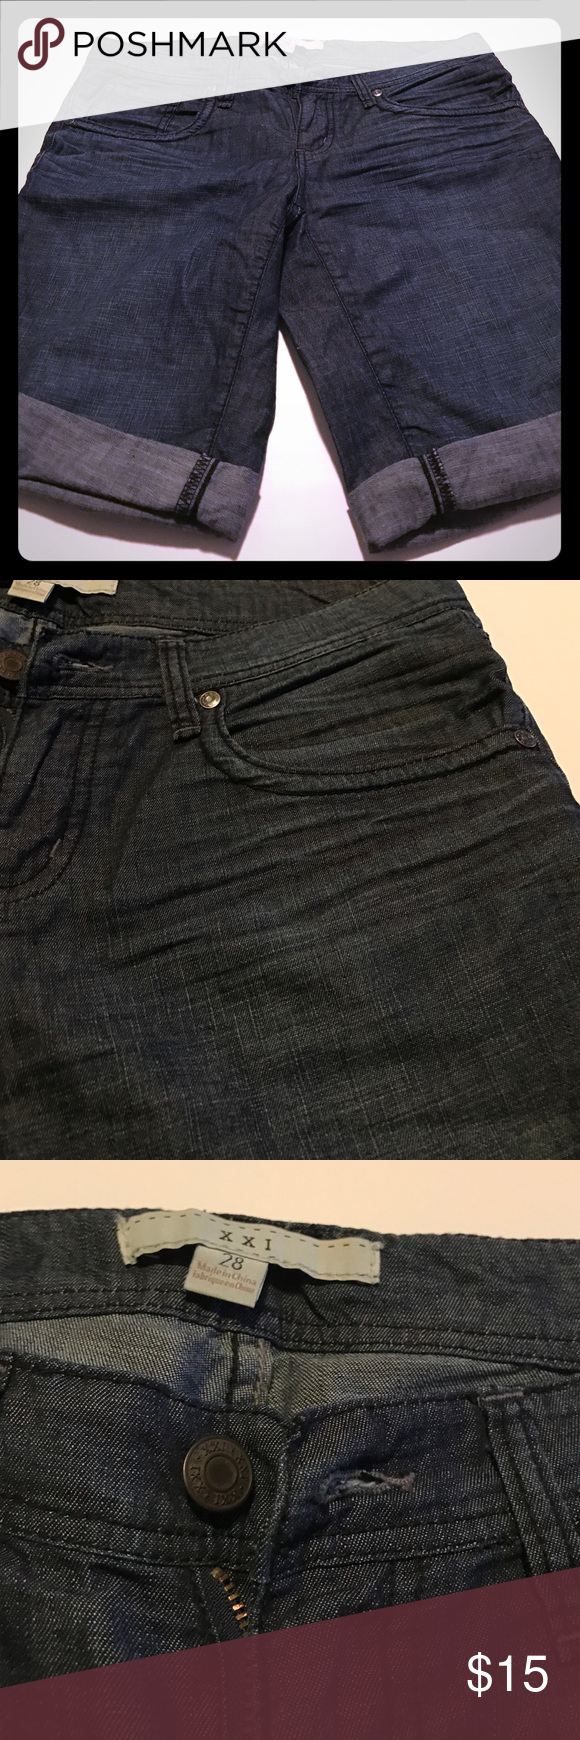 SALE!🎃 like new, Forever 21 bermudas 28 These are like new Forever 21 Bermuda shorts. Size 28. They have a distressed wrinkled look towards the top which is pictured. Waist measures 32 inches. Inseam is 10 inches. Dark denim. Forever 21 Shorts Bermudas